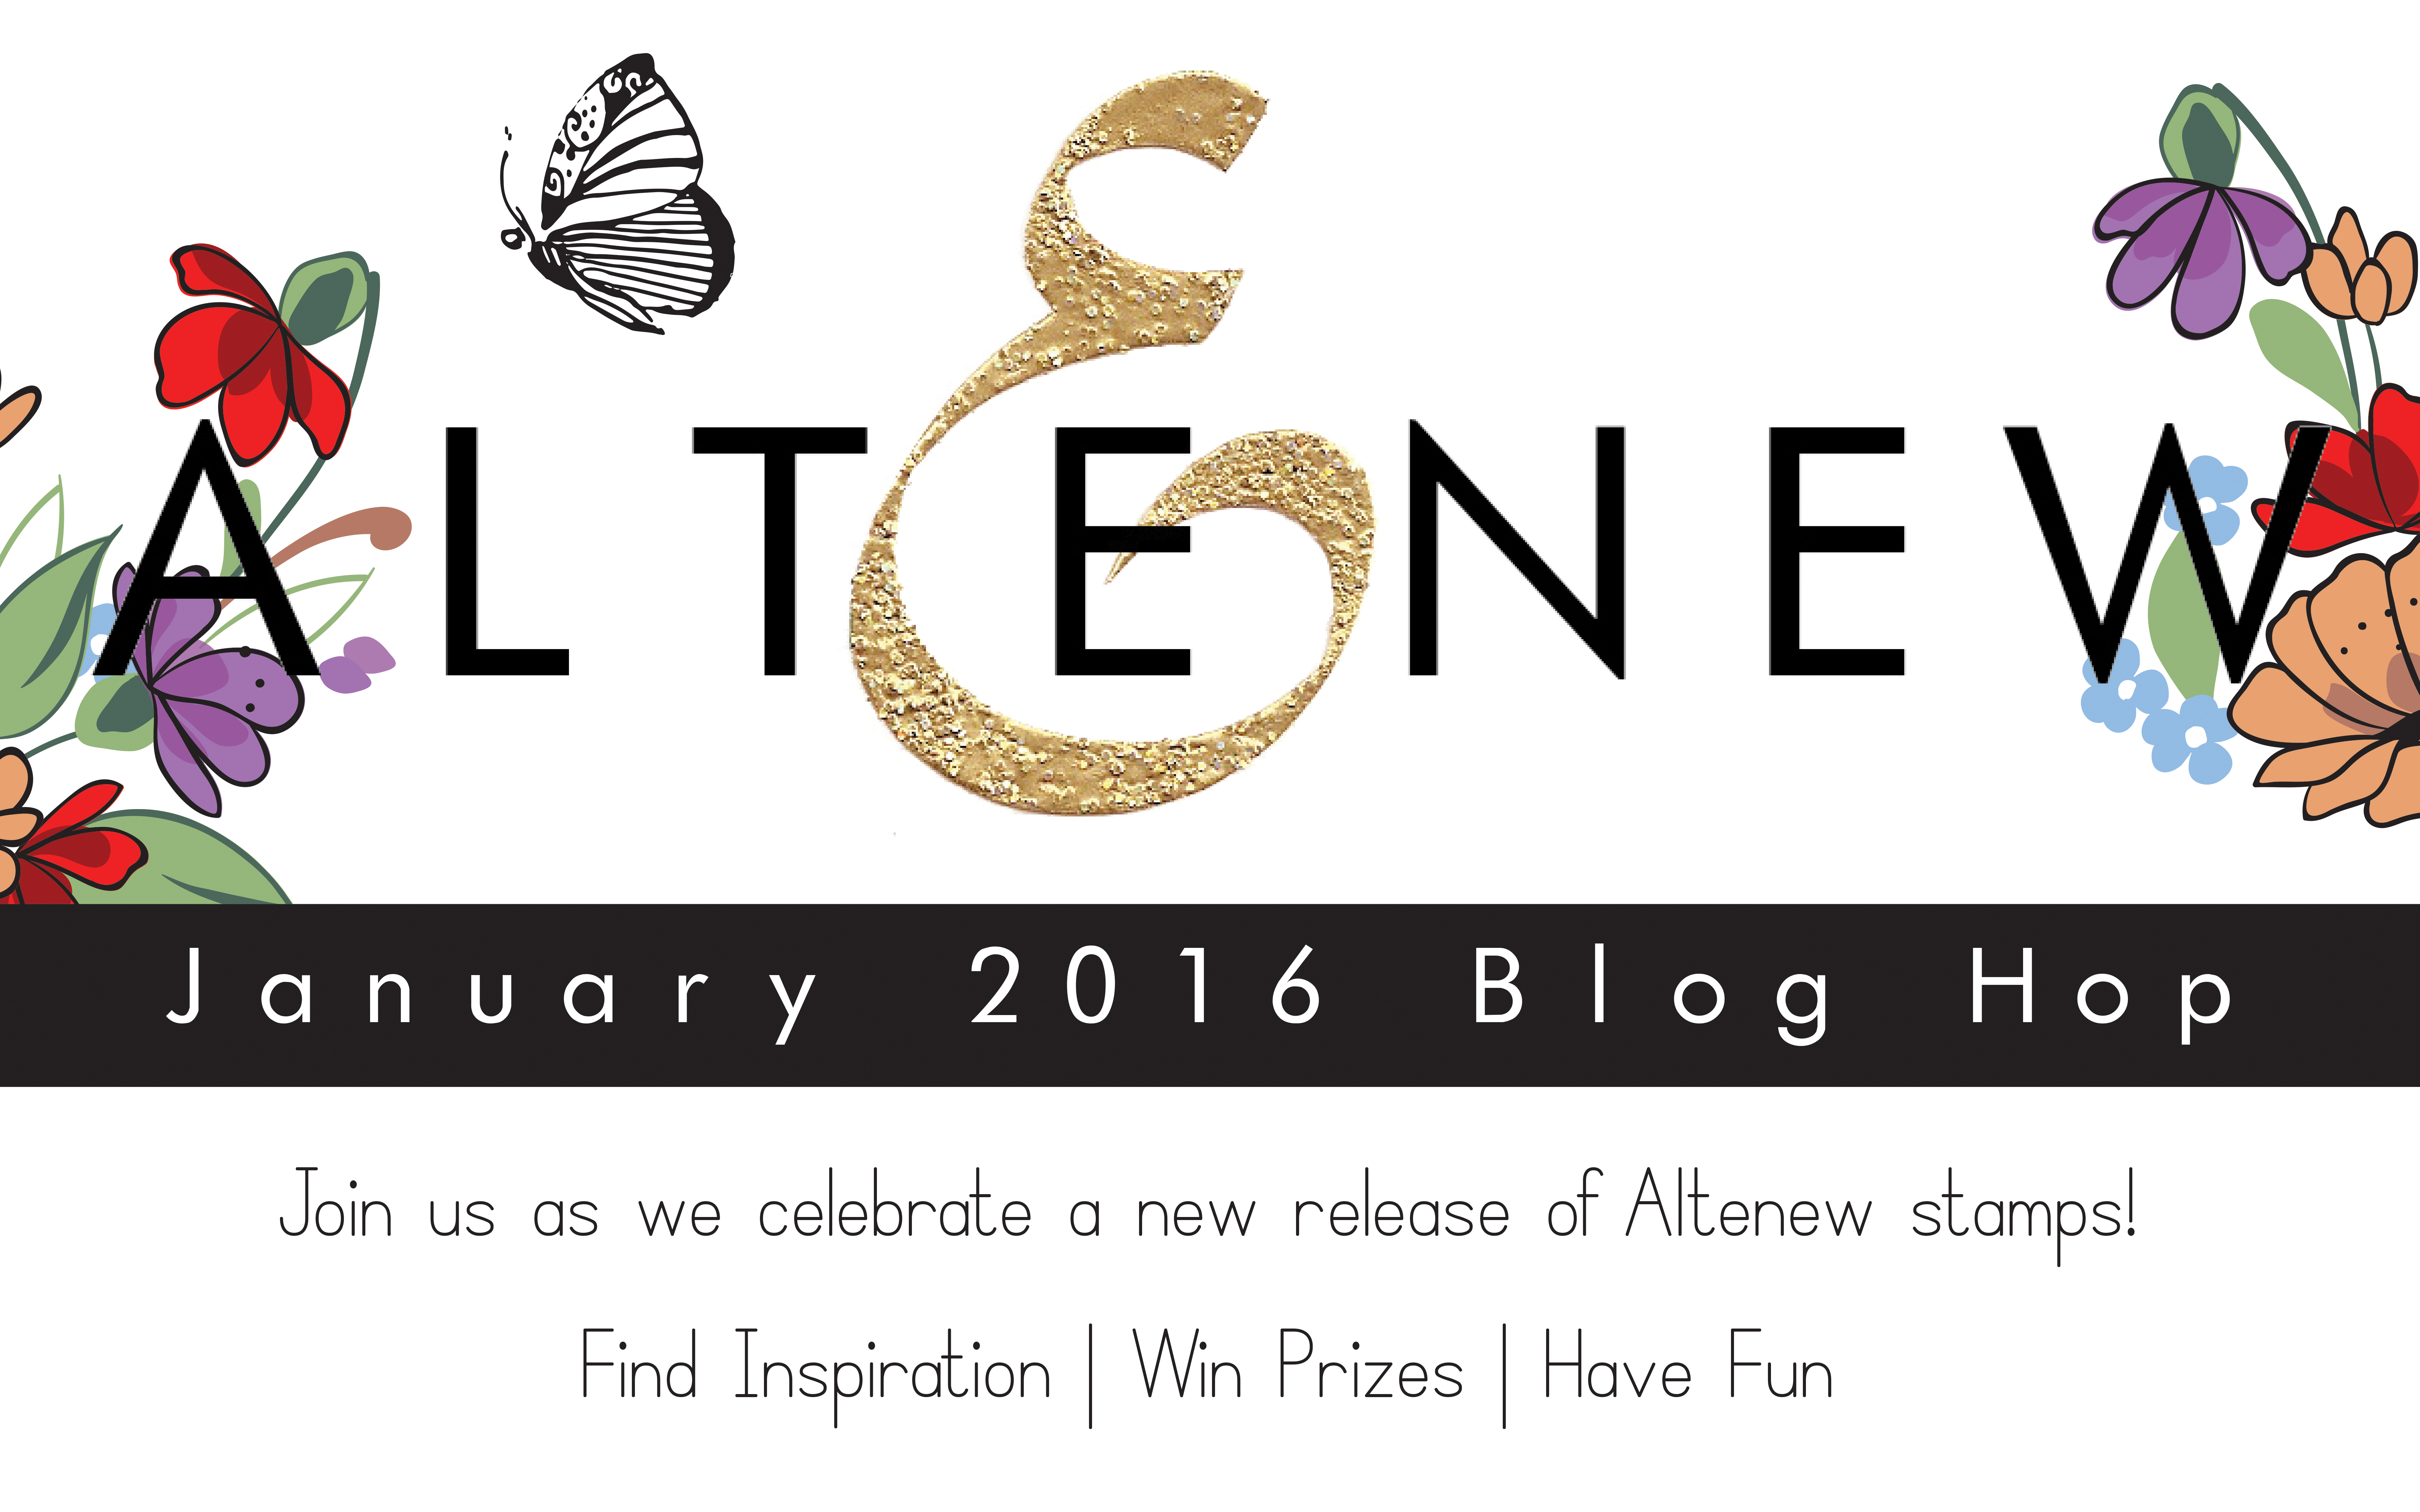 blog hop banner Jan 16